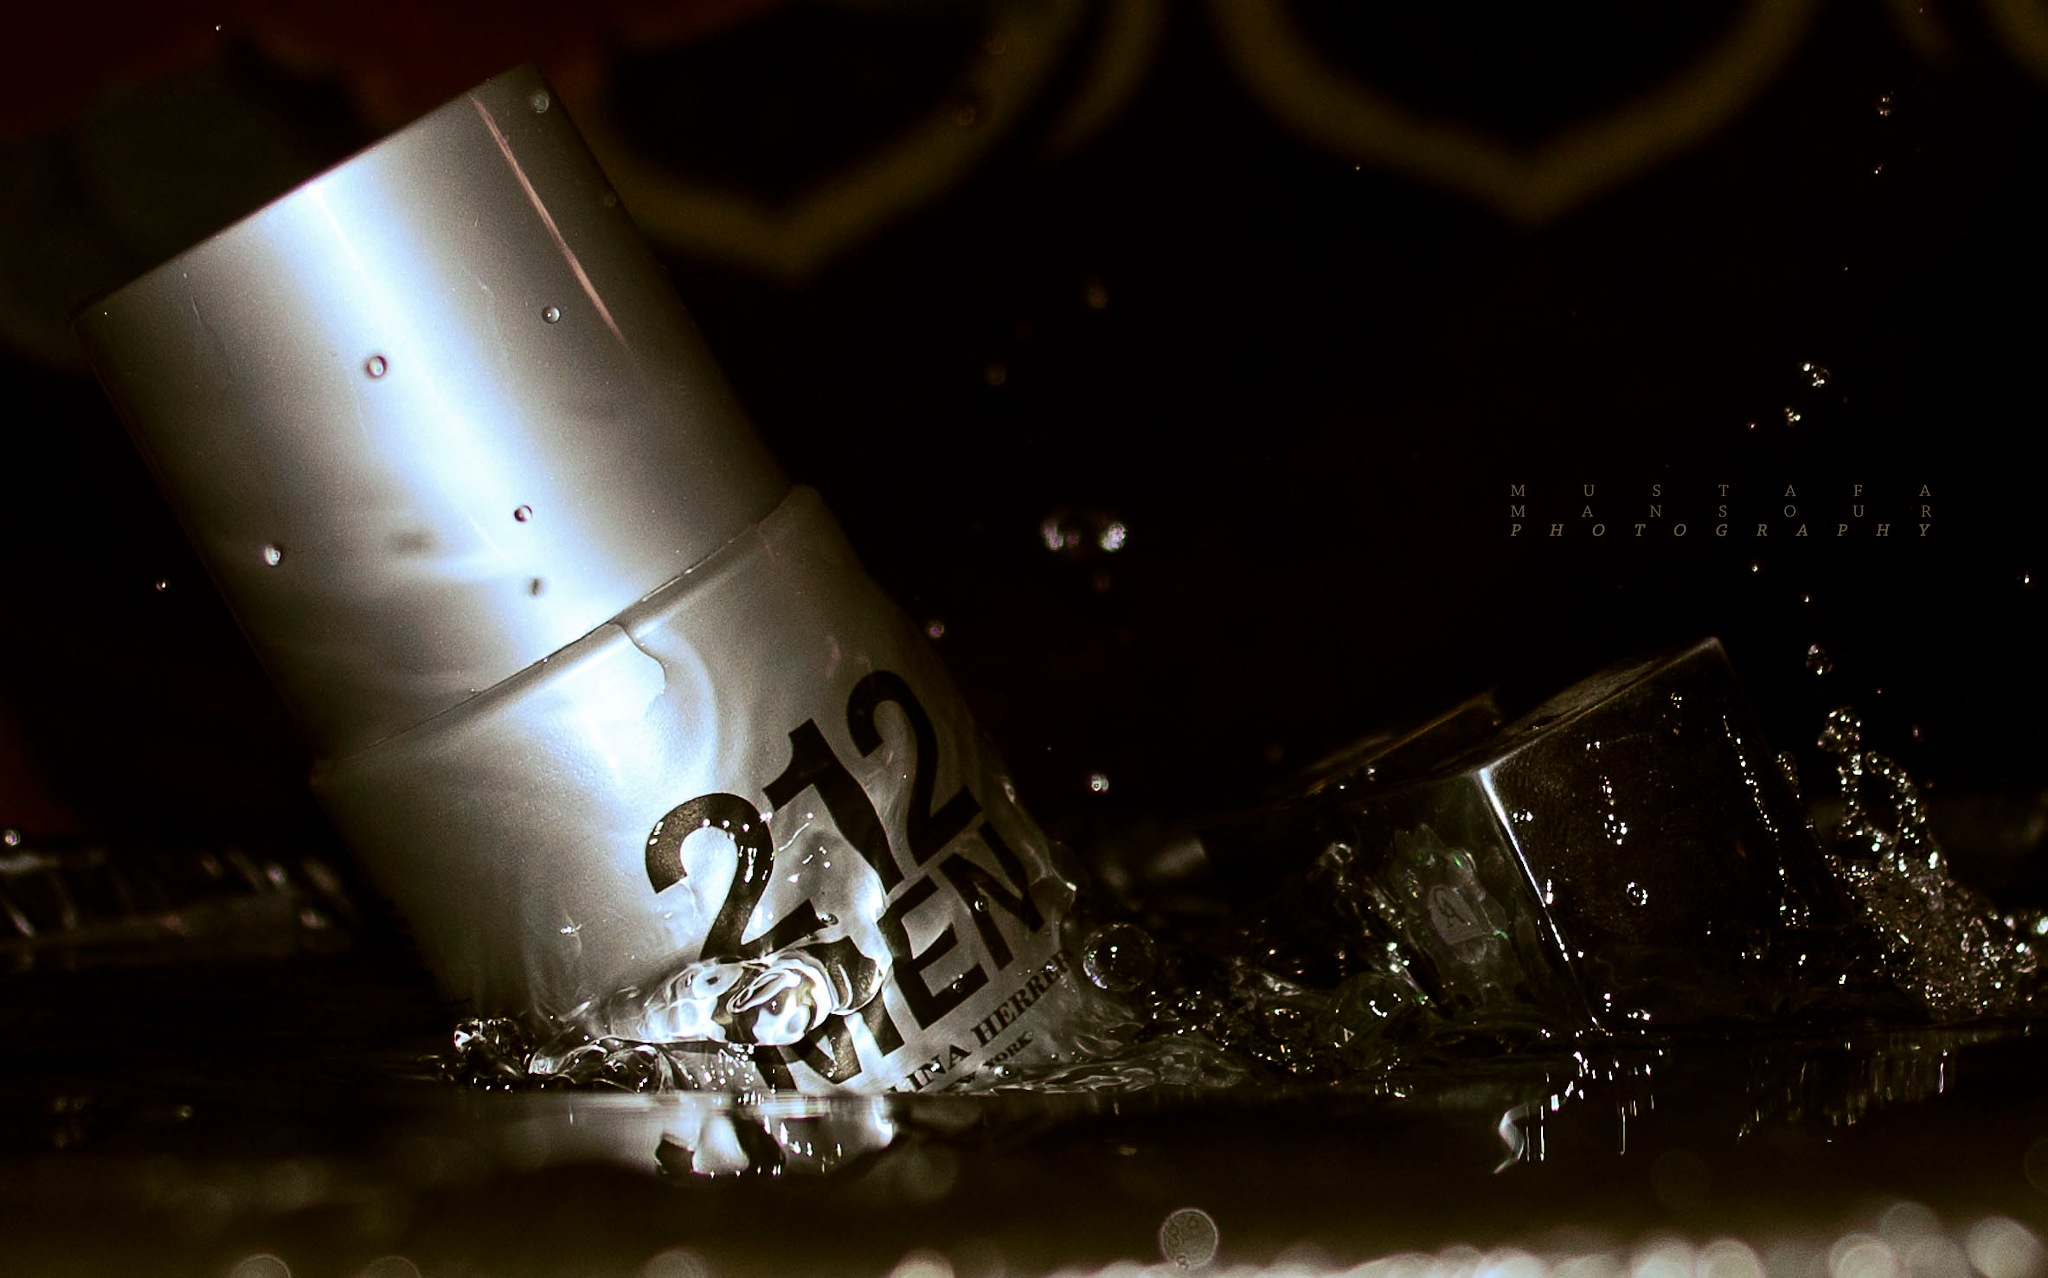 Ads for 212 perfume 3 by MustafaMansour